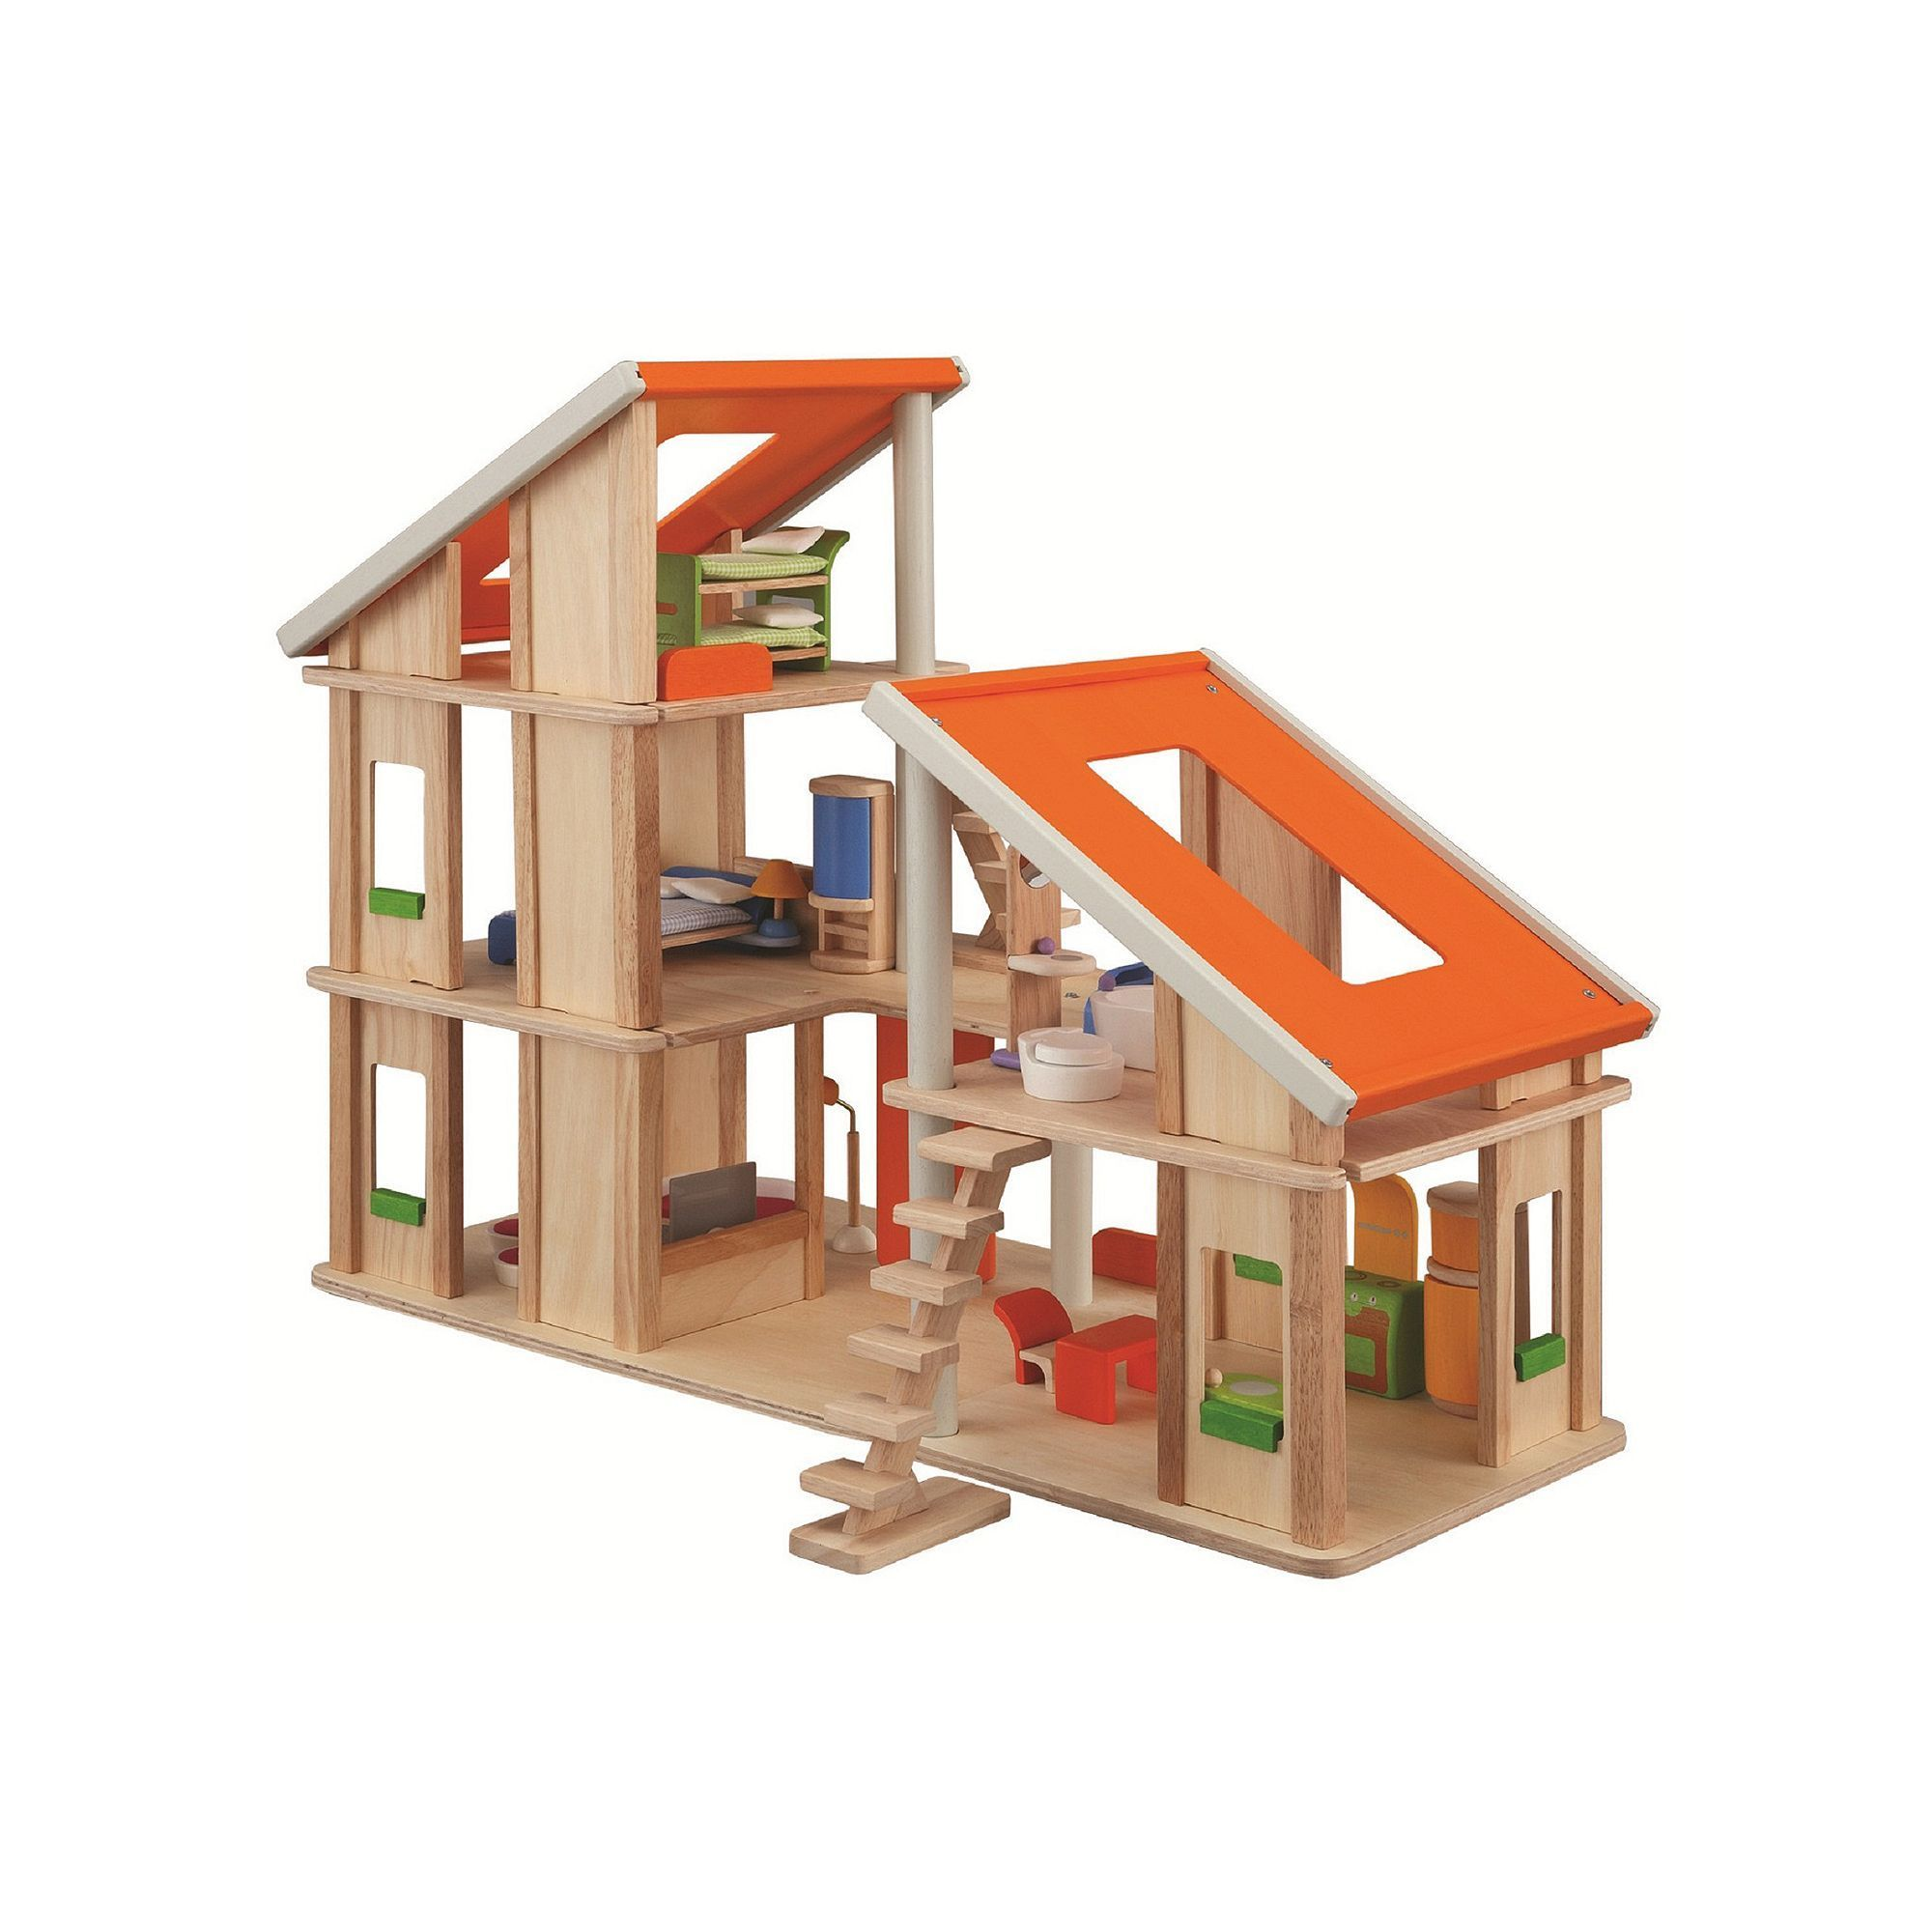 Plan toys chalet dollhouse with furniture multicolor